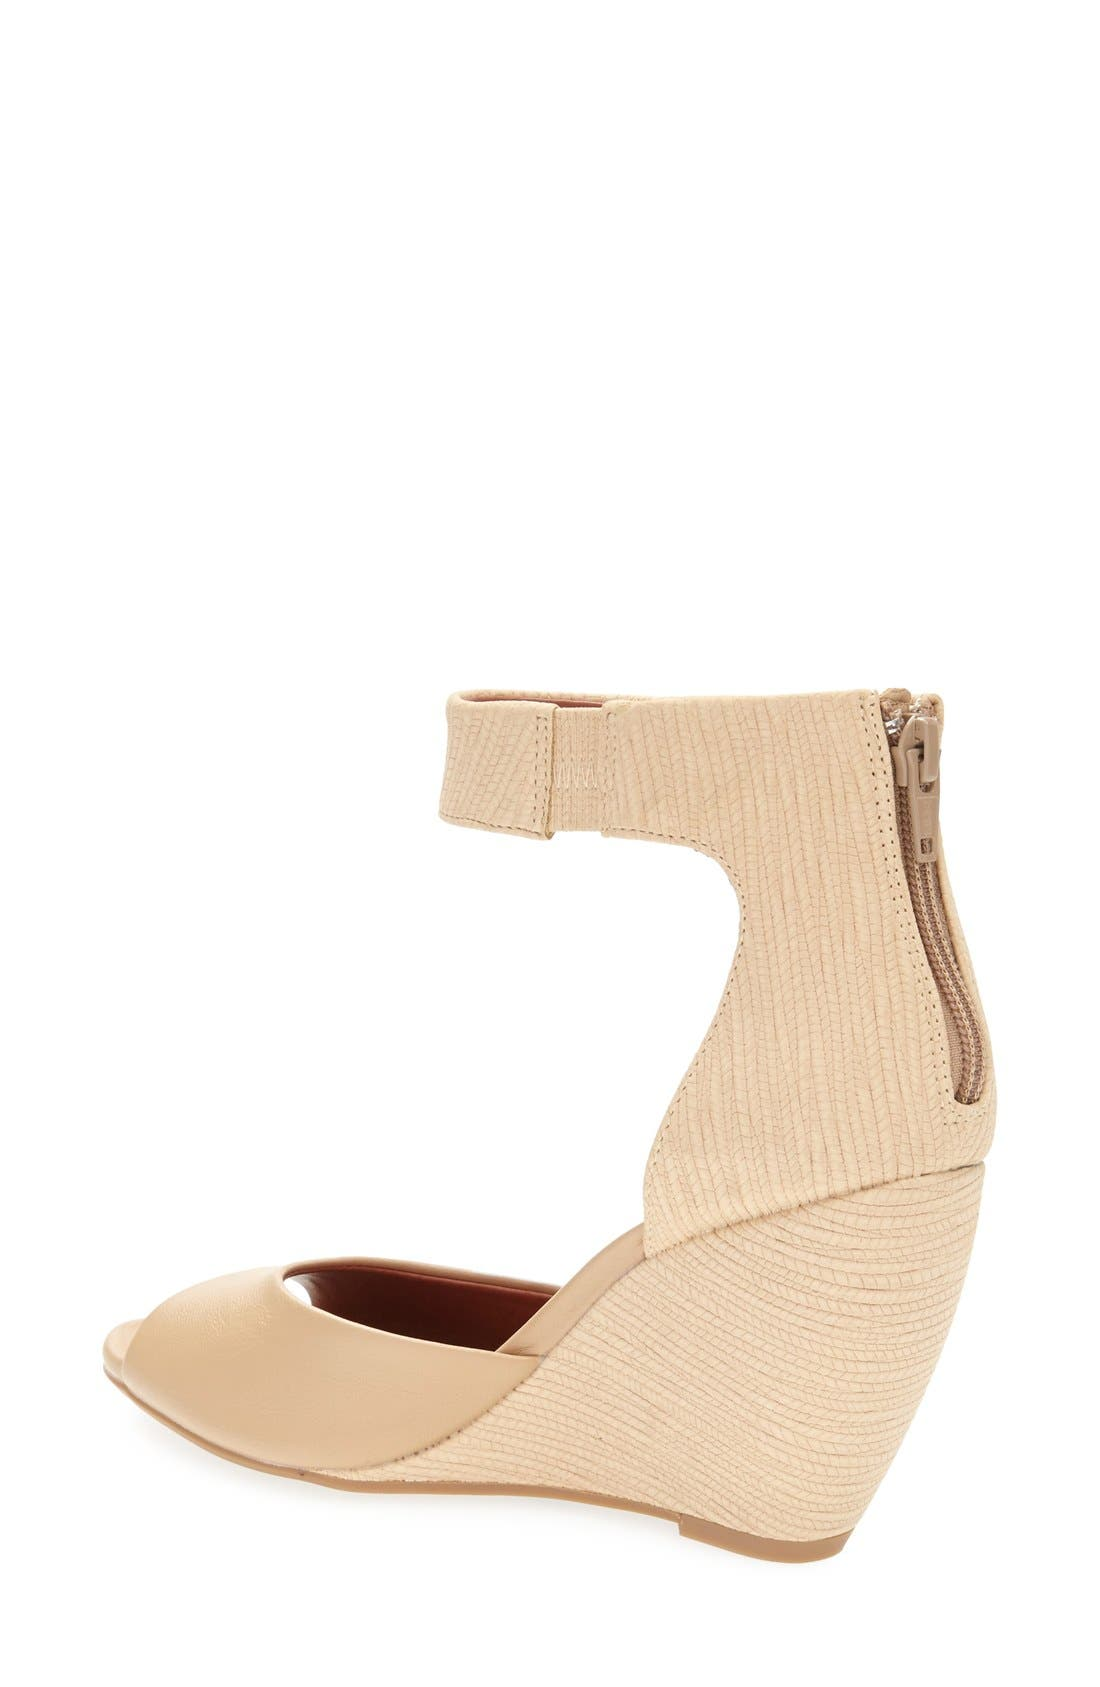 Alternate Image 2  - BC Footwear 'Deep Down' Wedge Sandal (Women)